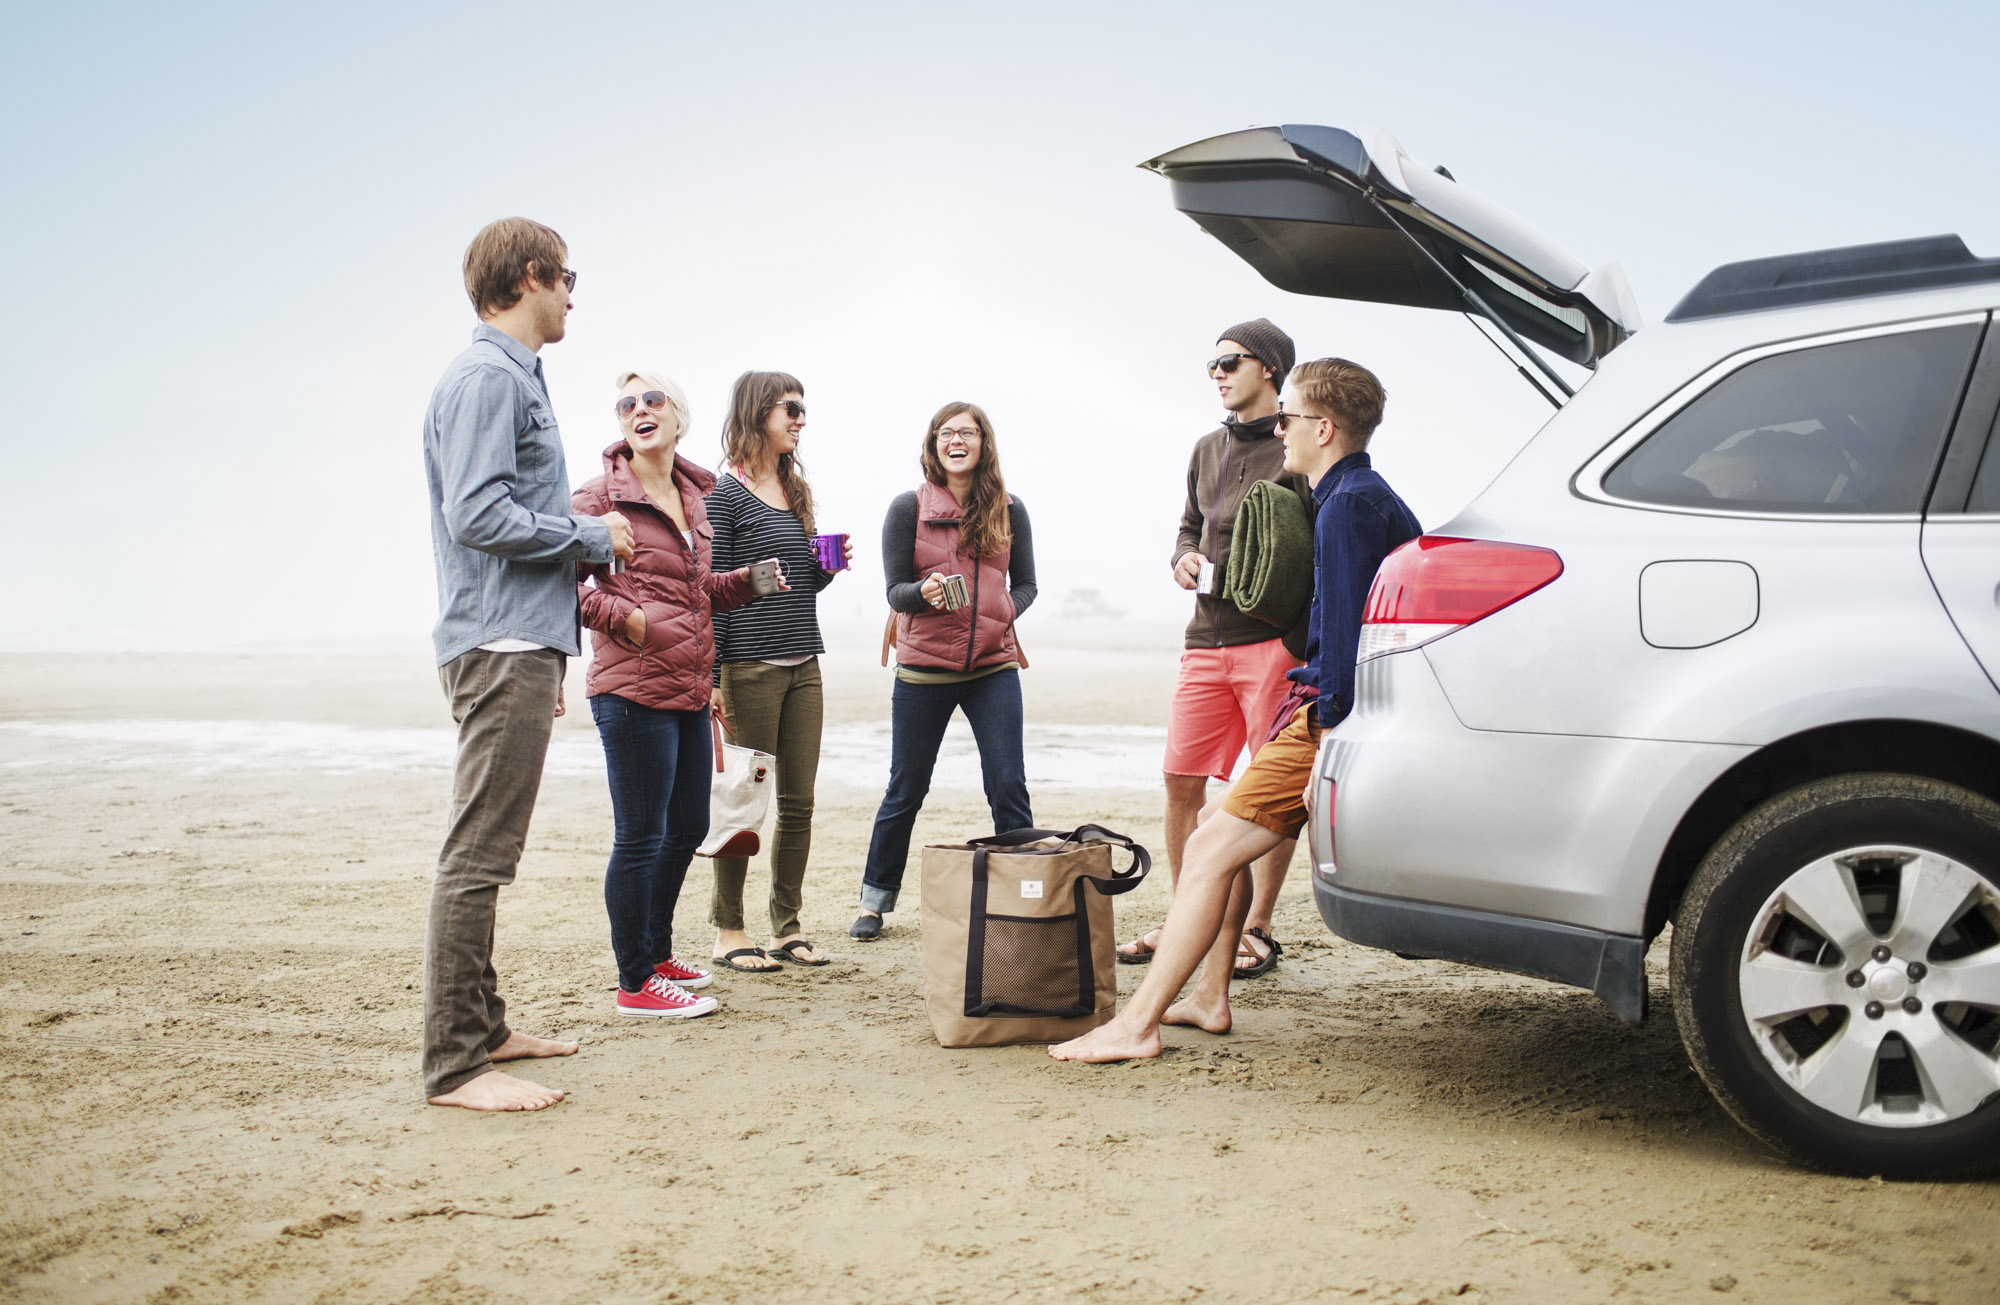 Group gathers around car